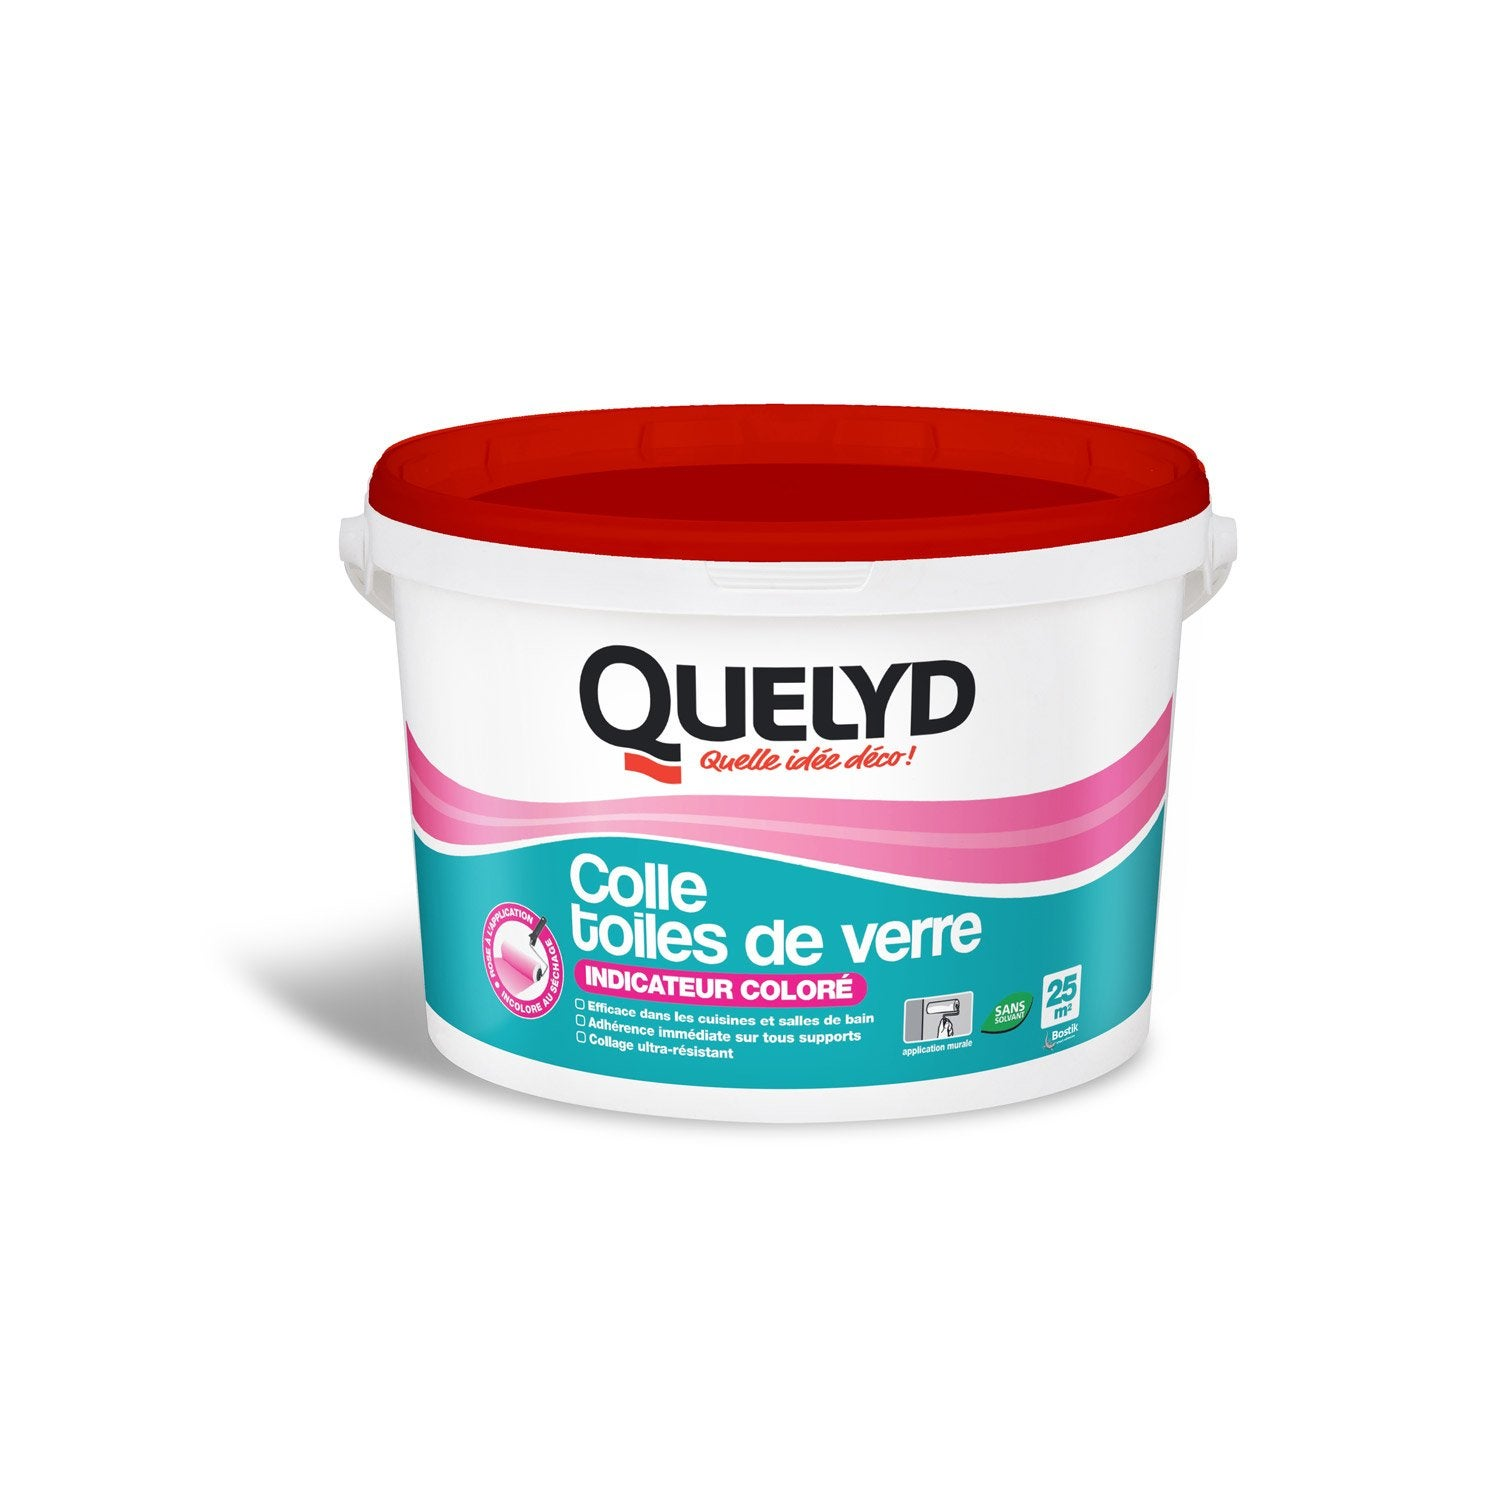 Colle toile de verre quelyd 5 kg leroy merlin for Decoller toile de verre